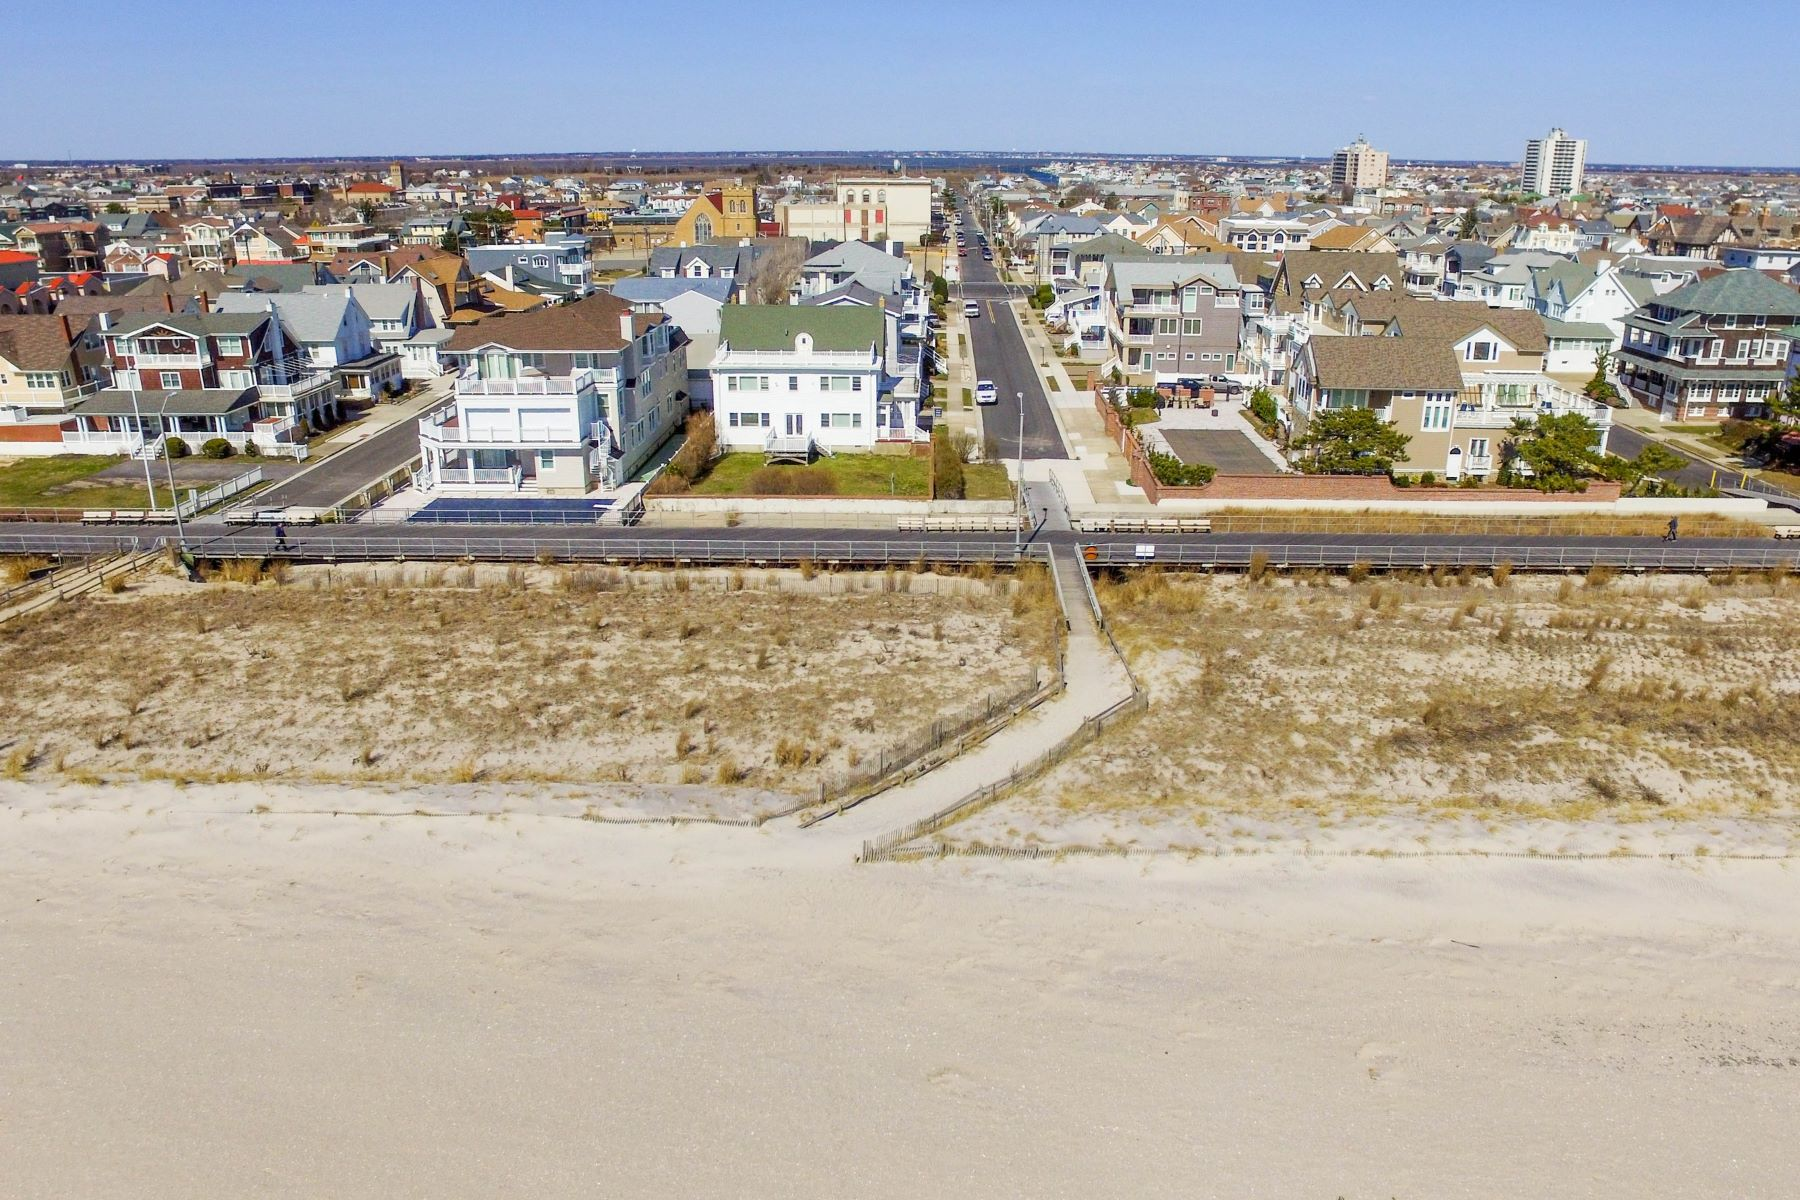 Land for Sale at 14 S Portland Ave SOUTHSIDE, Ventnor, New Jersey 08406 United States